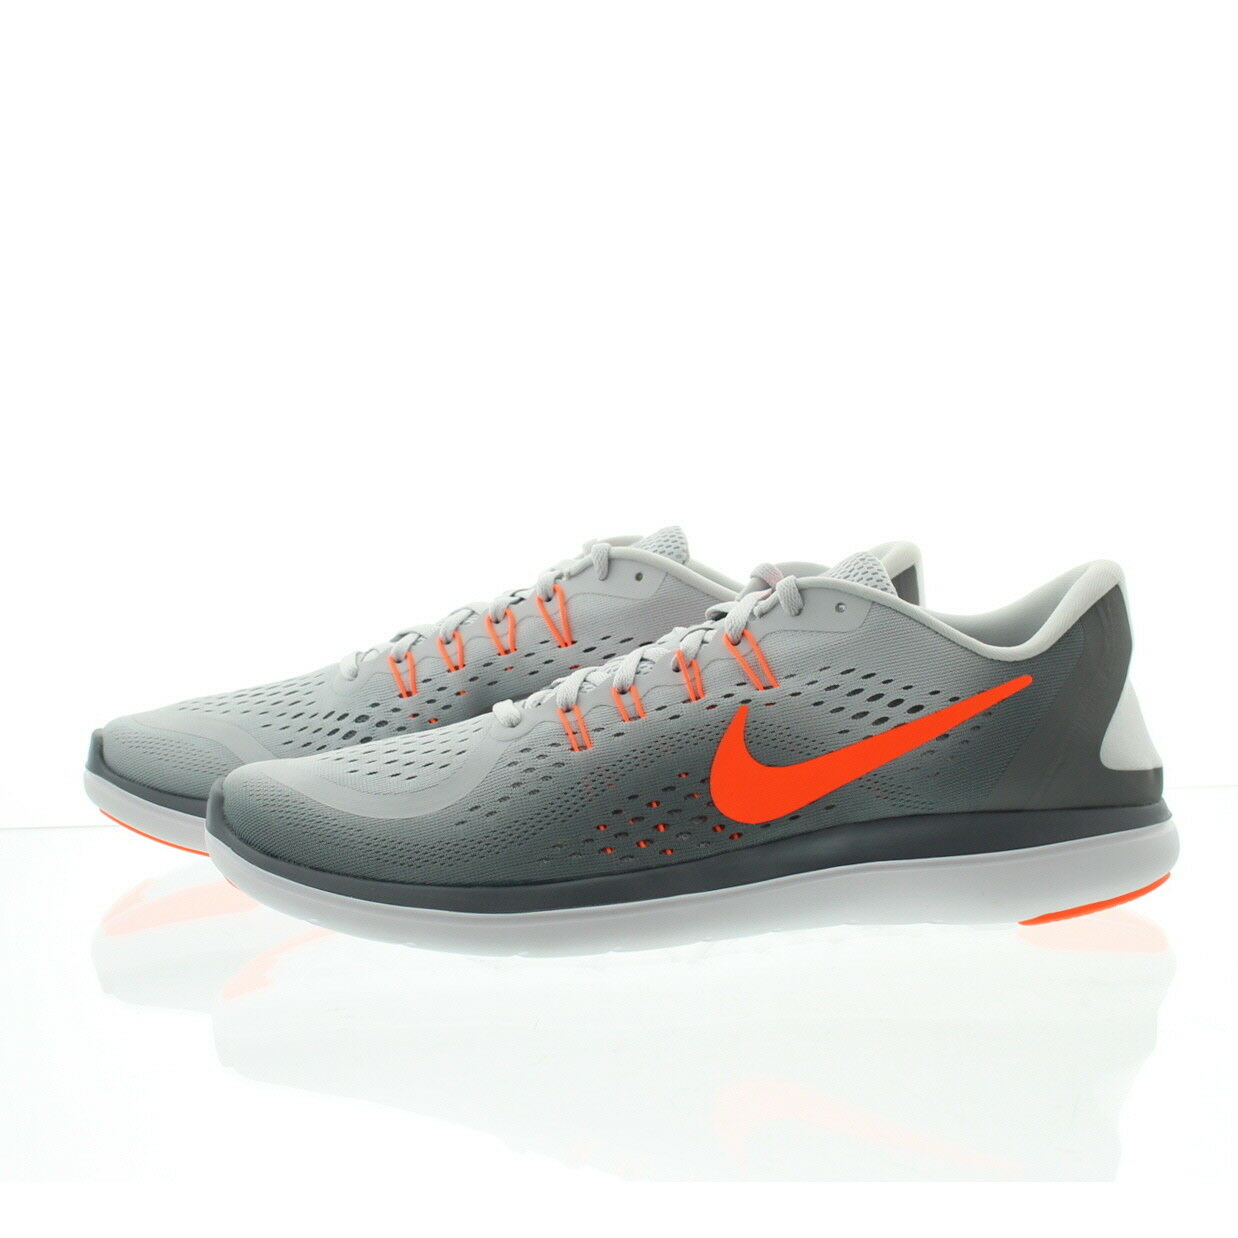 Nike 898457 Mens Flex 2017 Flywire Running Athletic Low Top shoes Sneakers